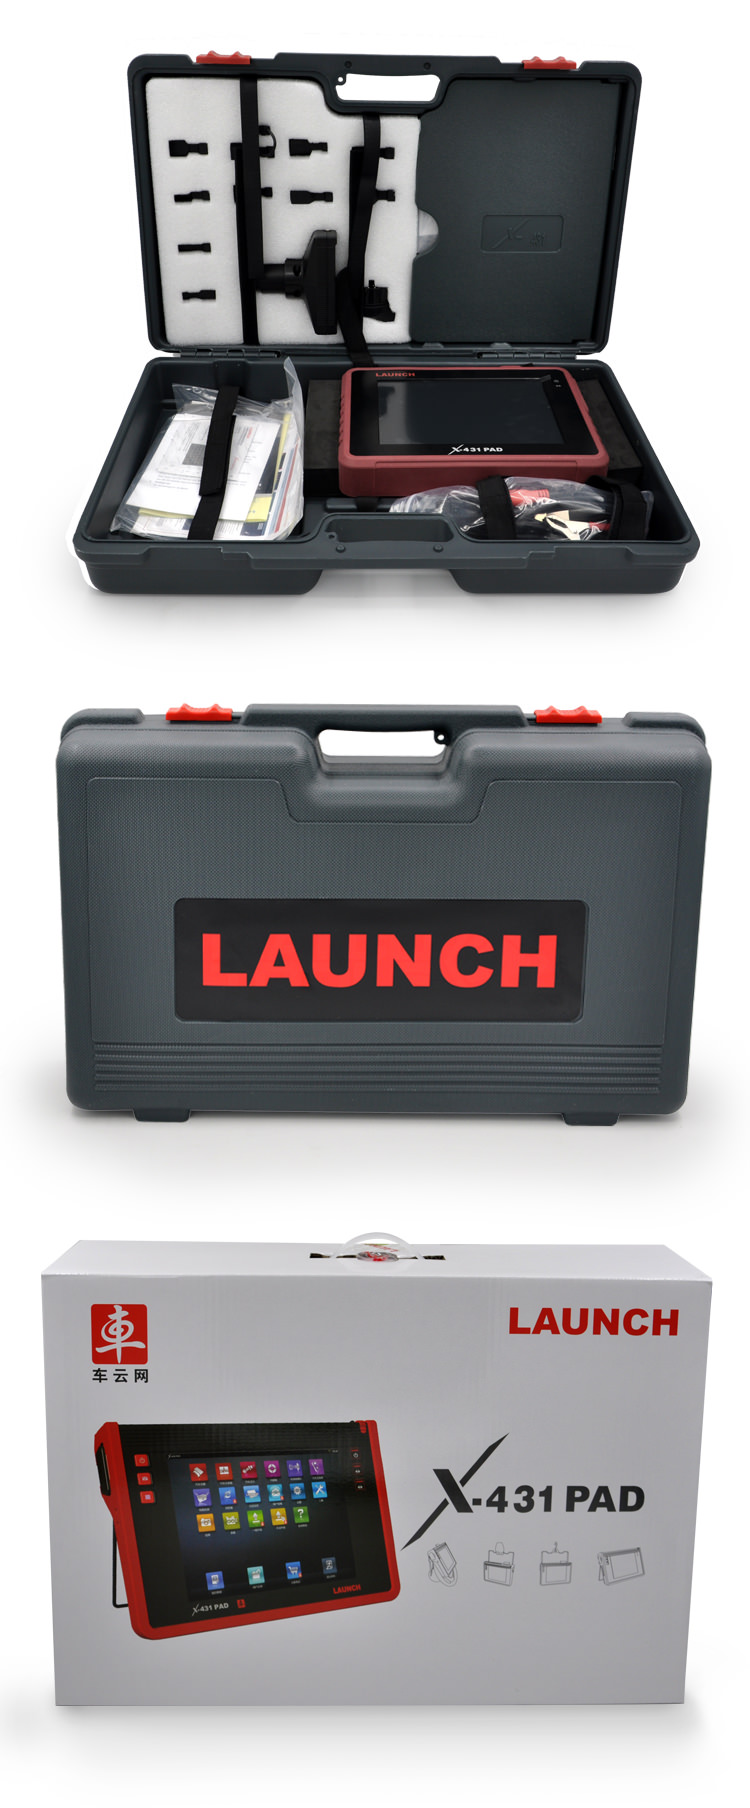 Launch x431 pad scanner